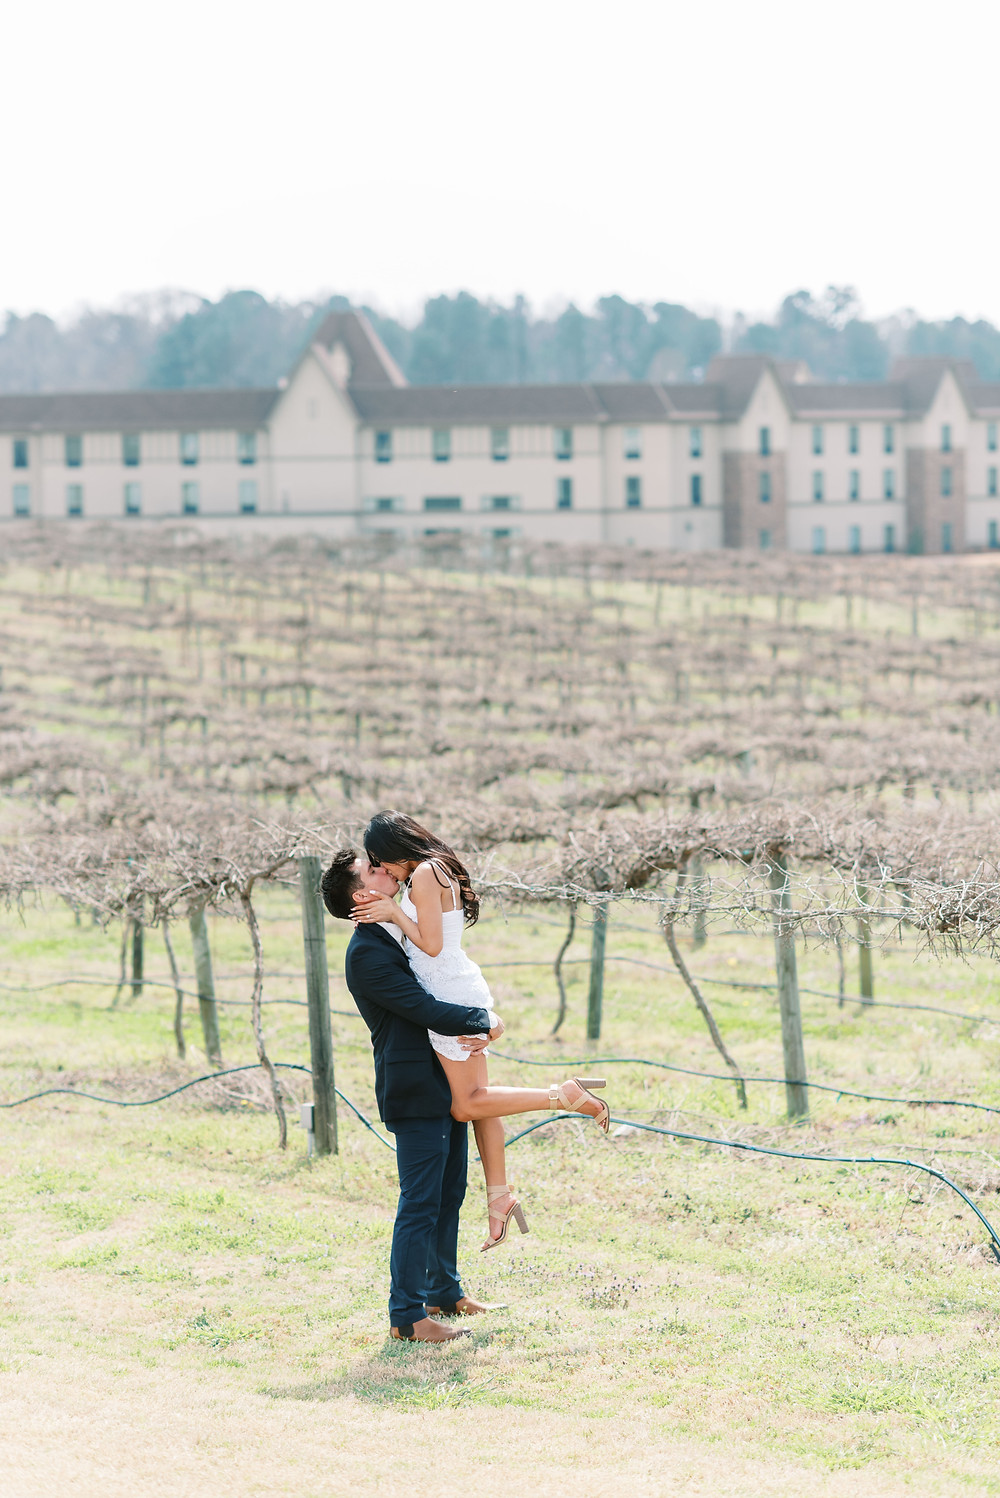 A ROMANTIC Surprise Chateau Elan Proposal guy propose to girl with rose petals everywhere